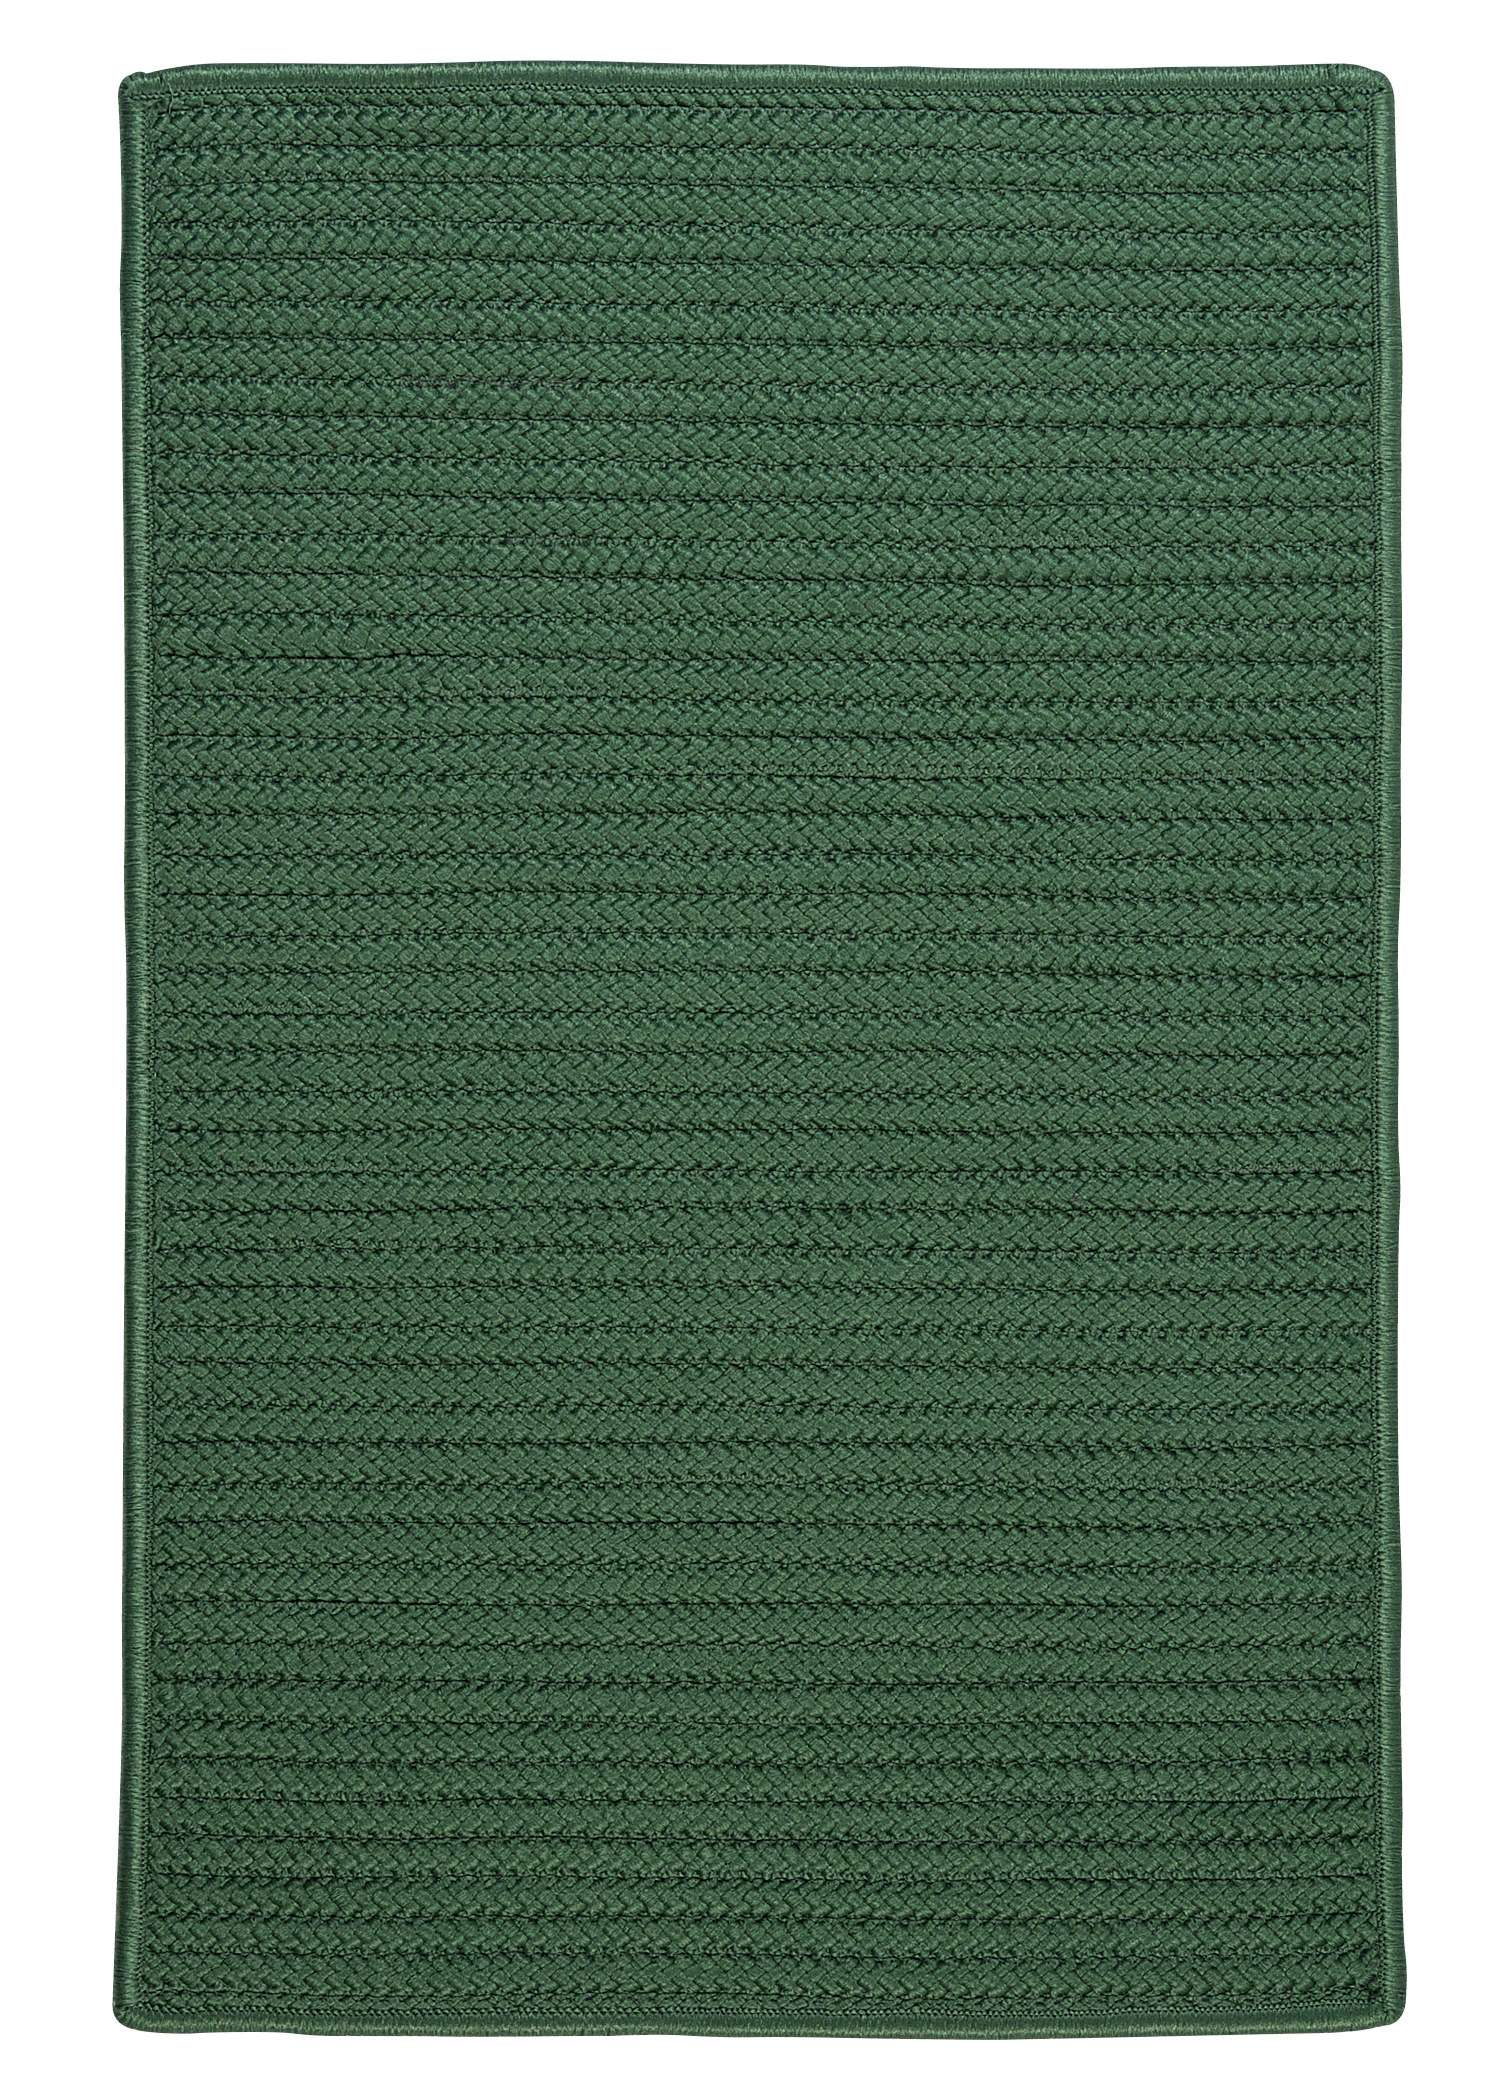 Simply Home Solid Myrtle Green 3'x5' Rectangular Rug